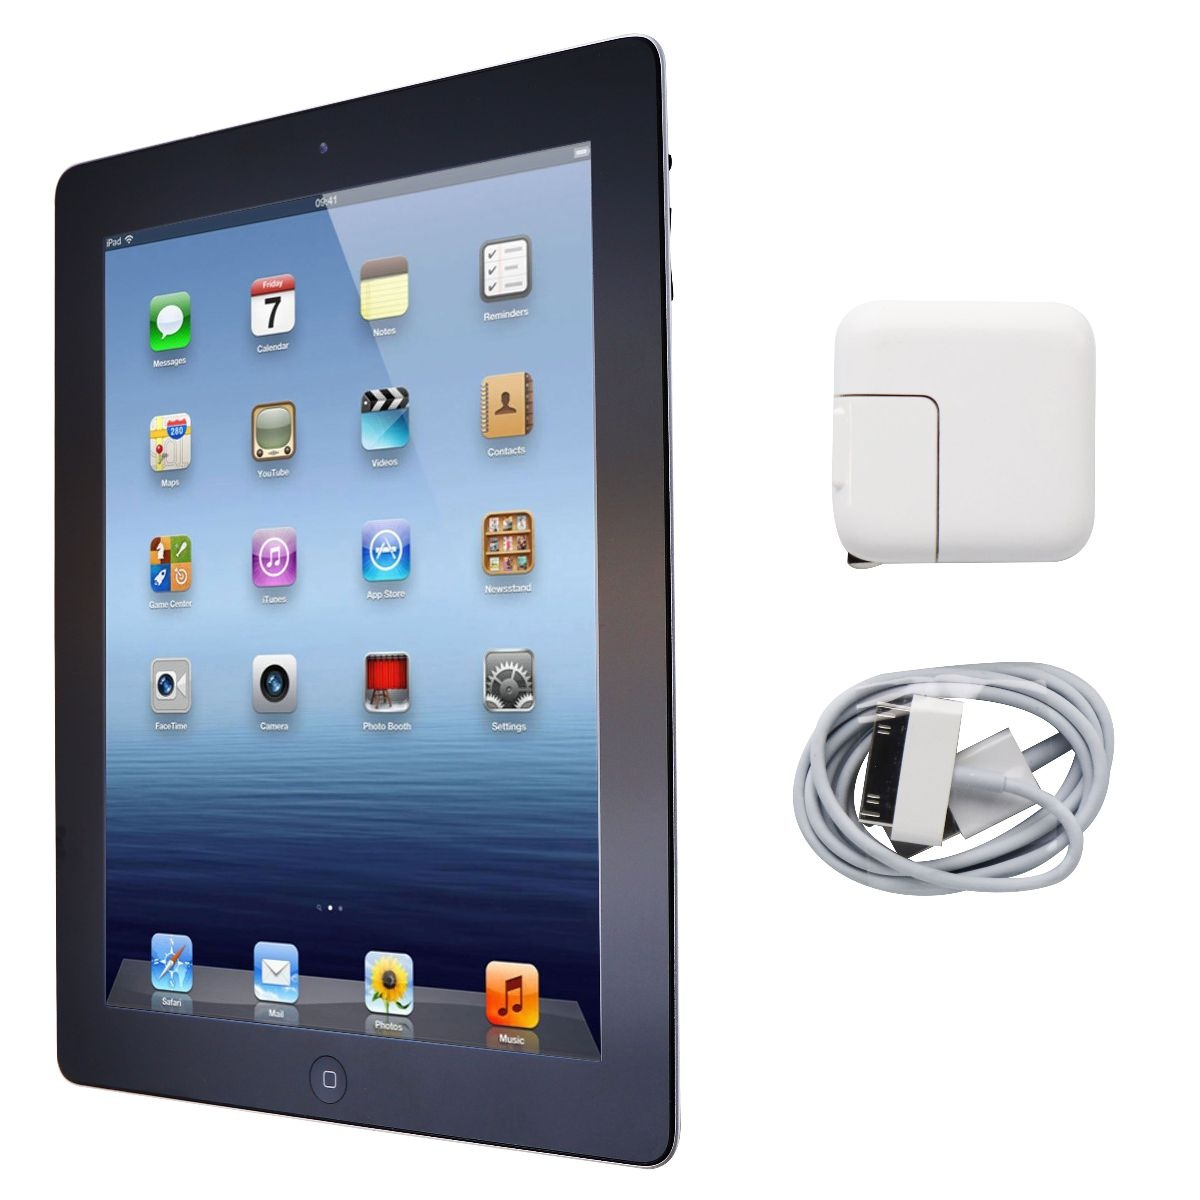 Apple iPad 9.7-inch (3rd Generation) Tablet A1416 (Wi-Fi ONLY) - 32GB / Black